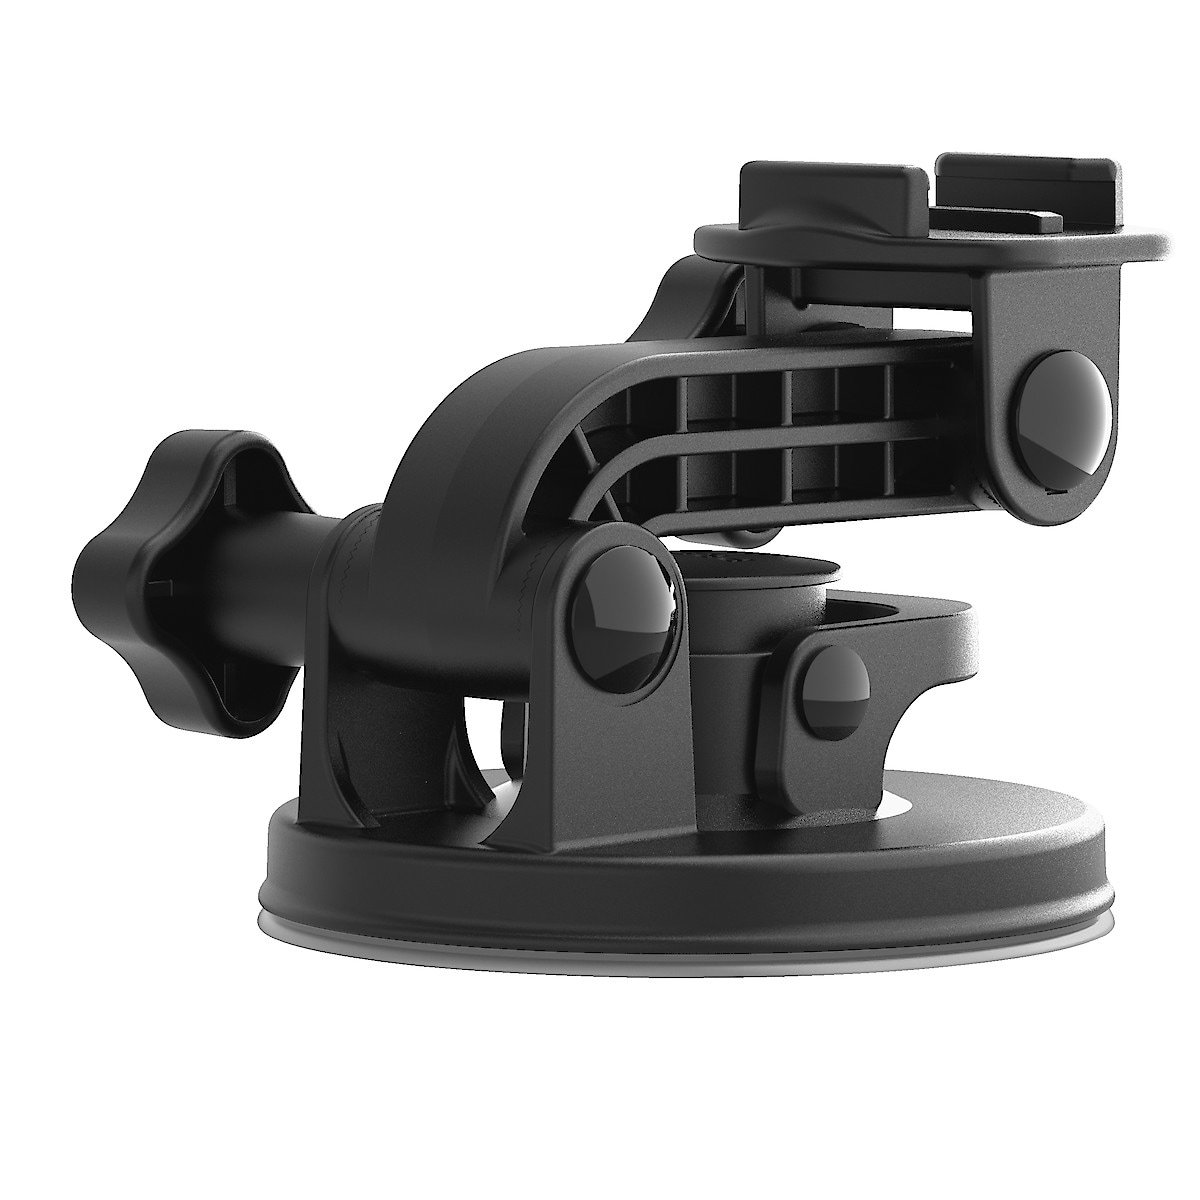 Sugkoppsfäste GoPro Suction Cup Mount